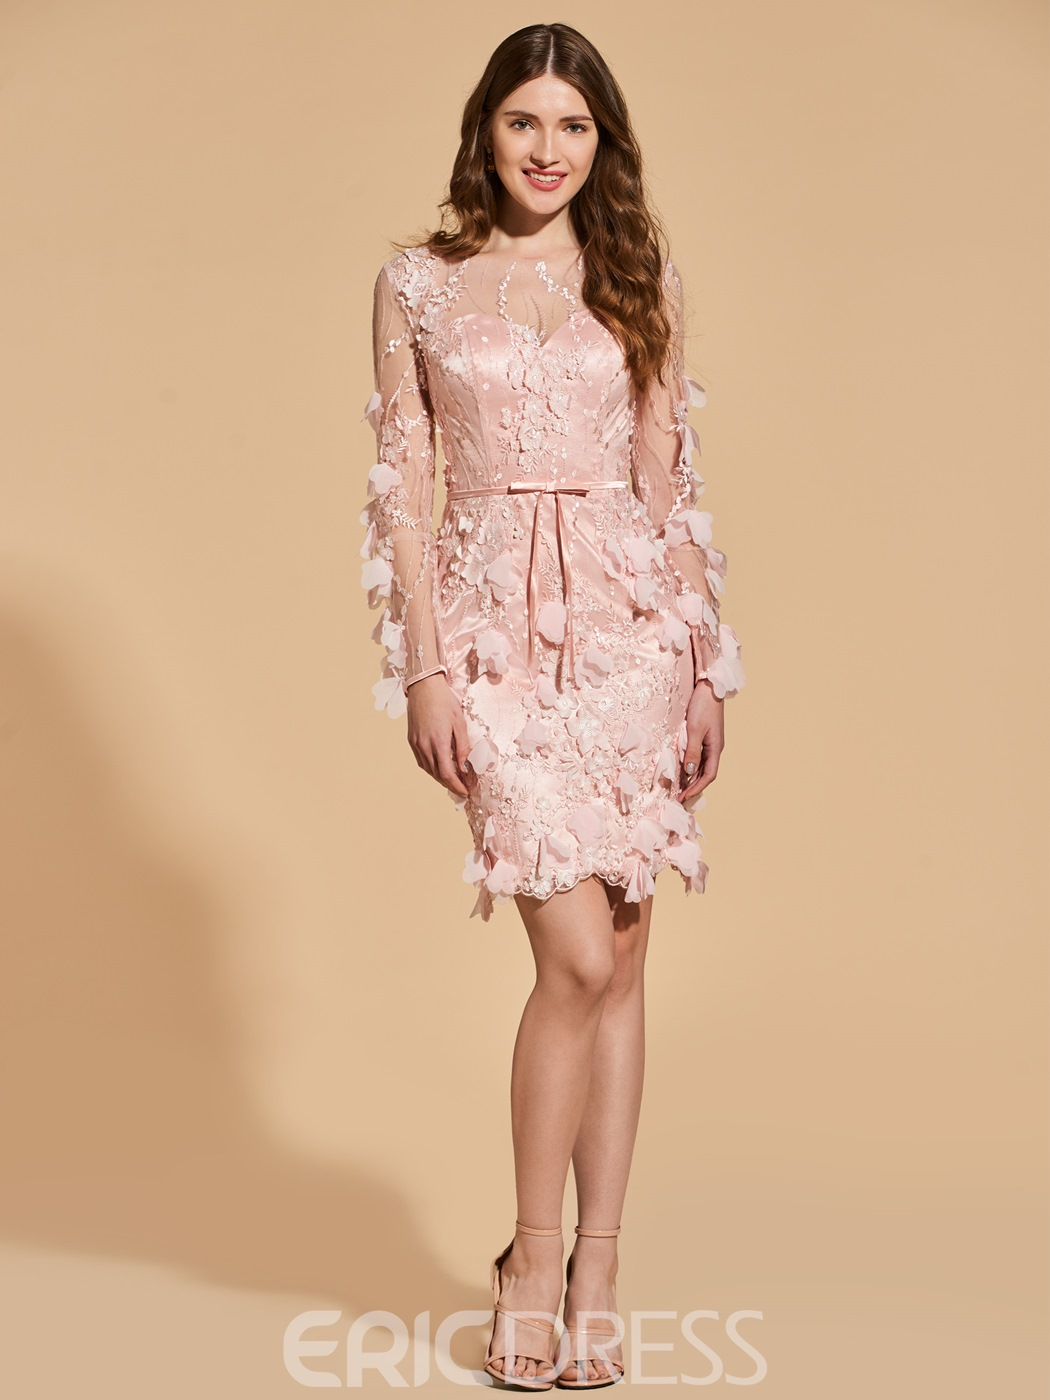 2bd8d98b2 Ericdress Sheath Long Sleeve 3D Floral Bodycon Homecoming Dress(13164055)